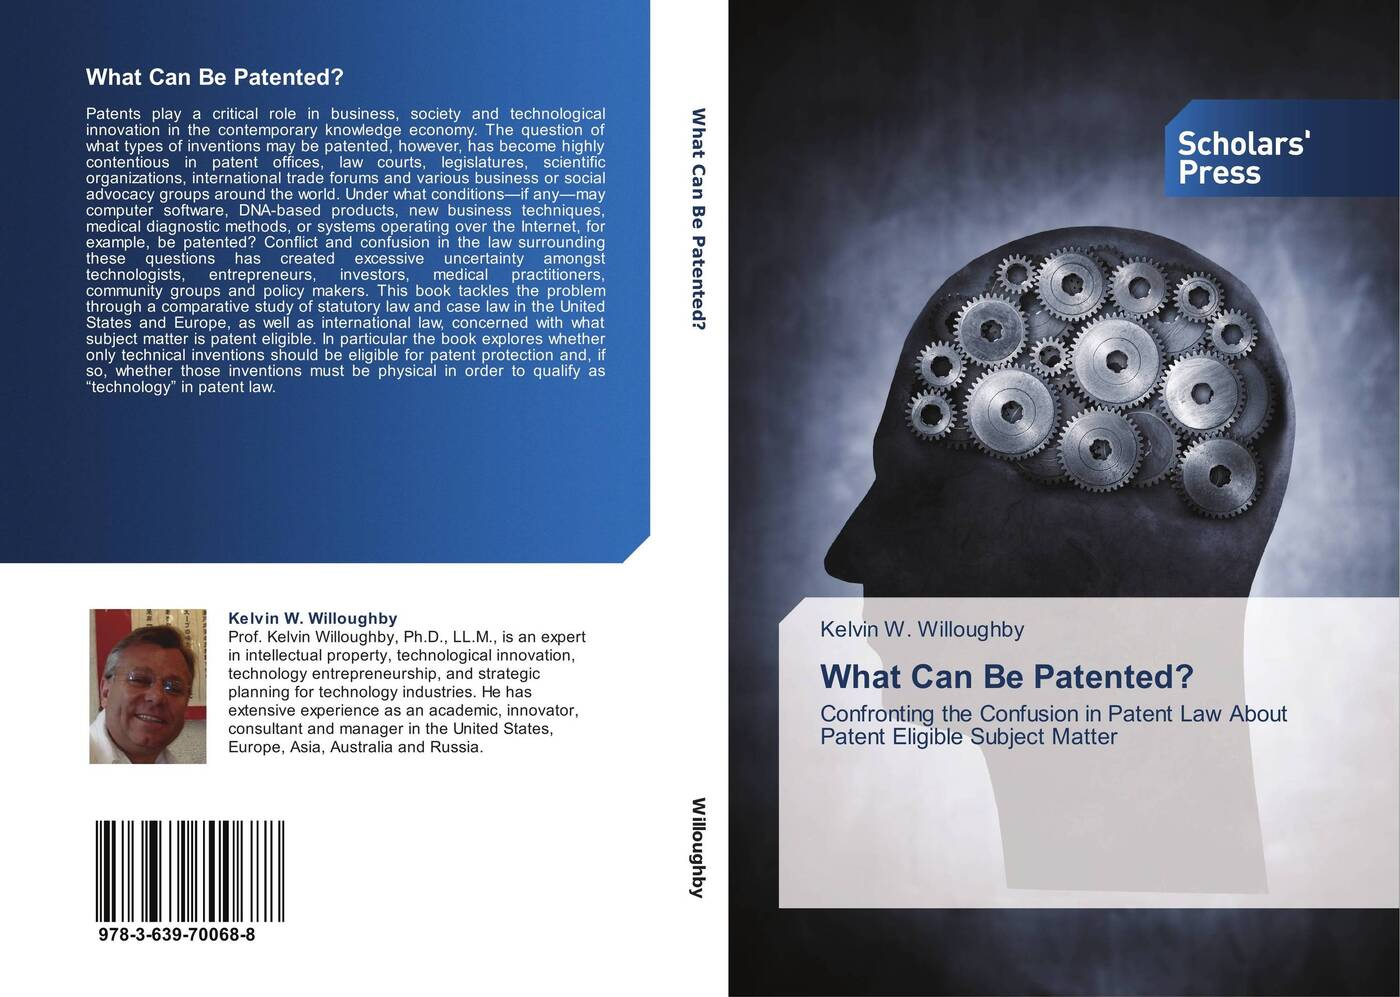 Kelvin W. Willoughby What Can Be Patented?